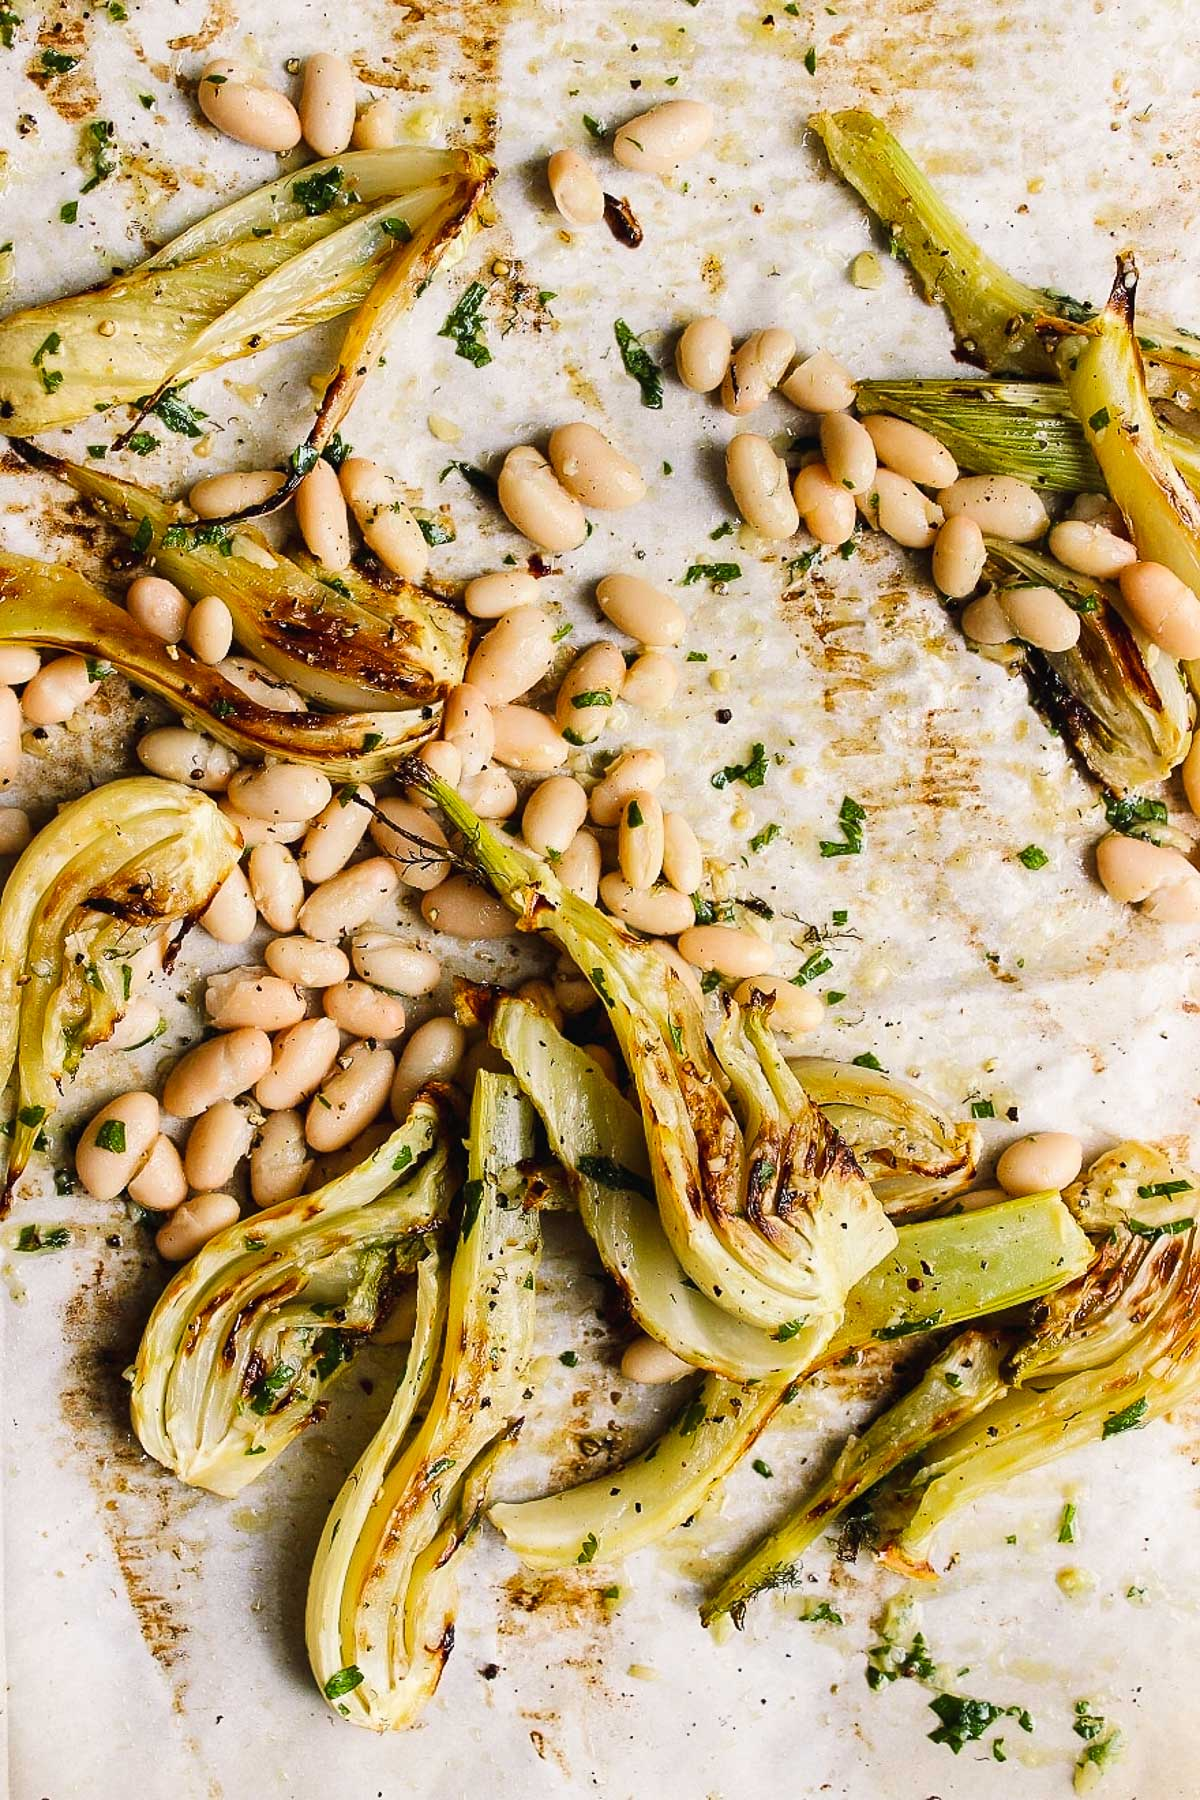 Sheet Pan Roasted Fennel and White Beans with Parsley Oil